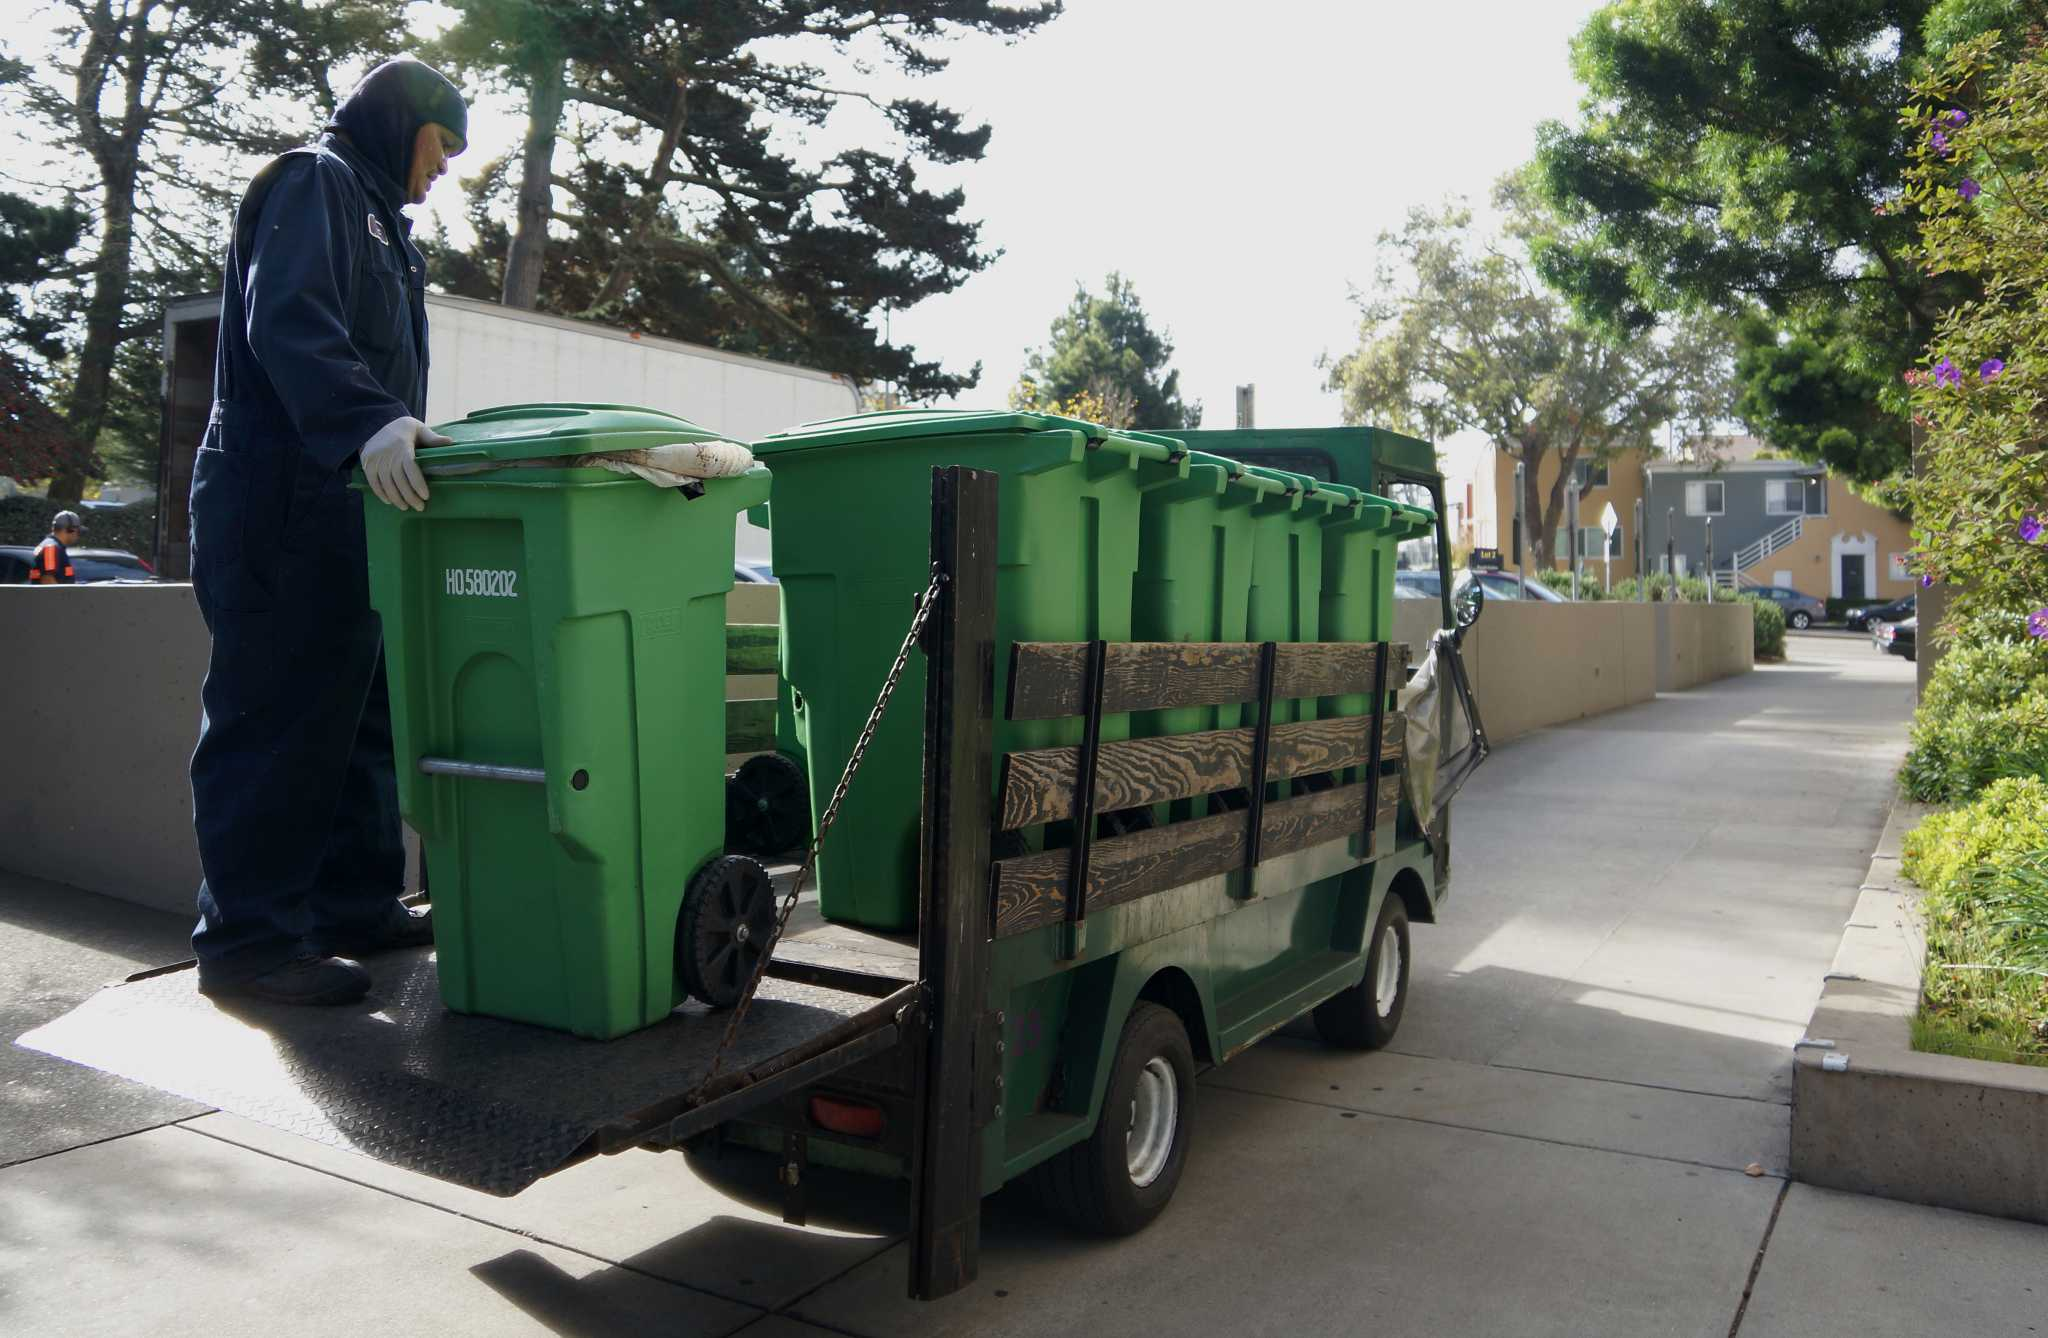 SF State's Integrated Waste Management employee Eric Igtanloc moves compost  bins in front of the Administration Building on Tuesday, Sept 27, 2016.